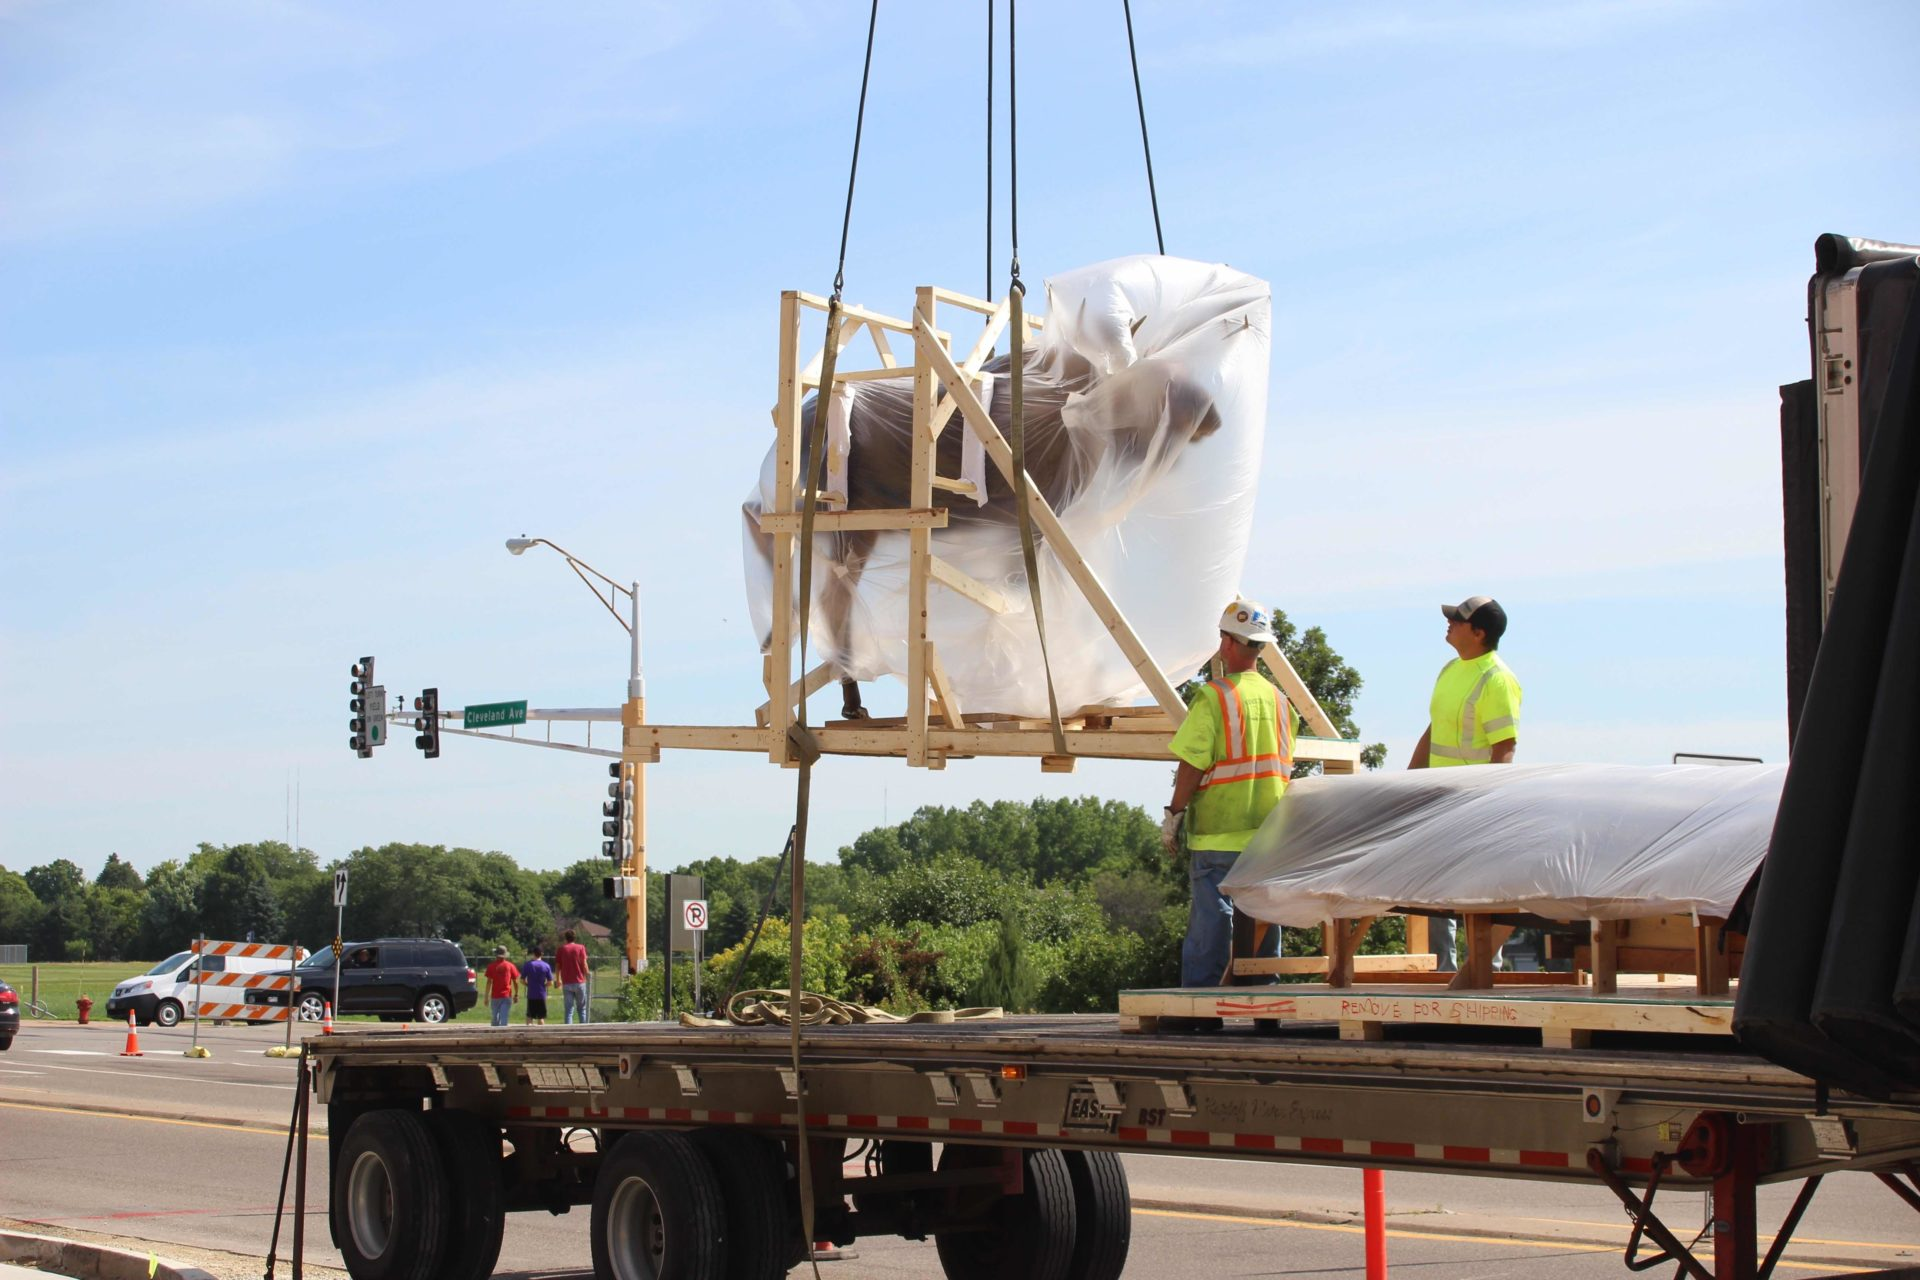 Taxidermy moose, wrapped in plastic, being lifted by crane